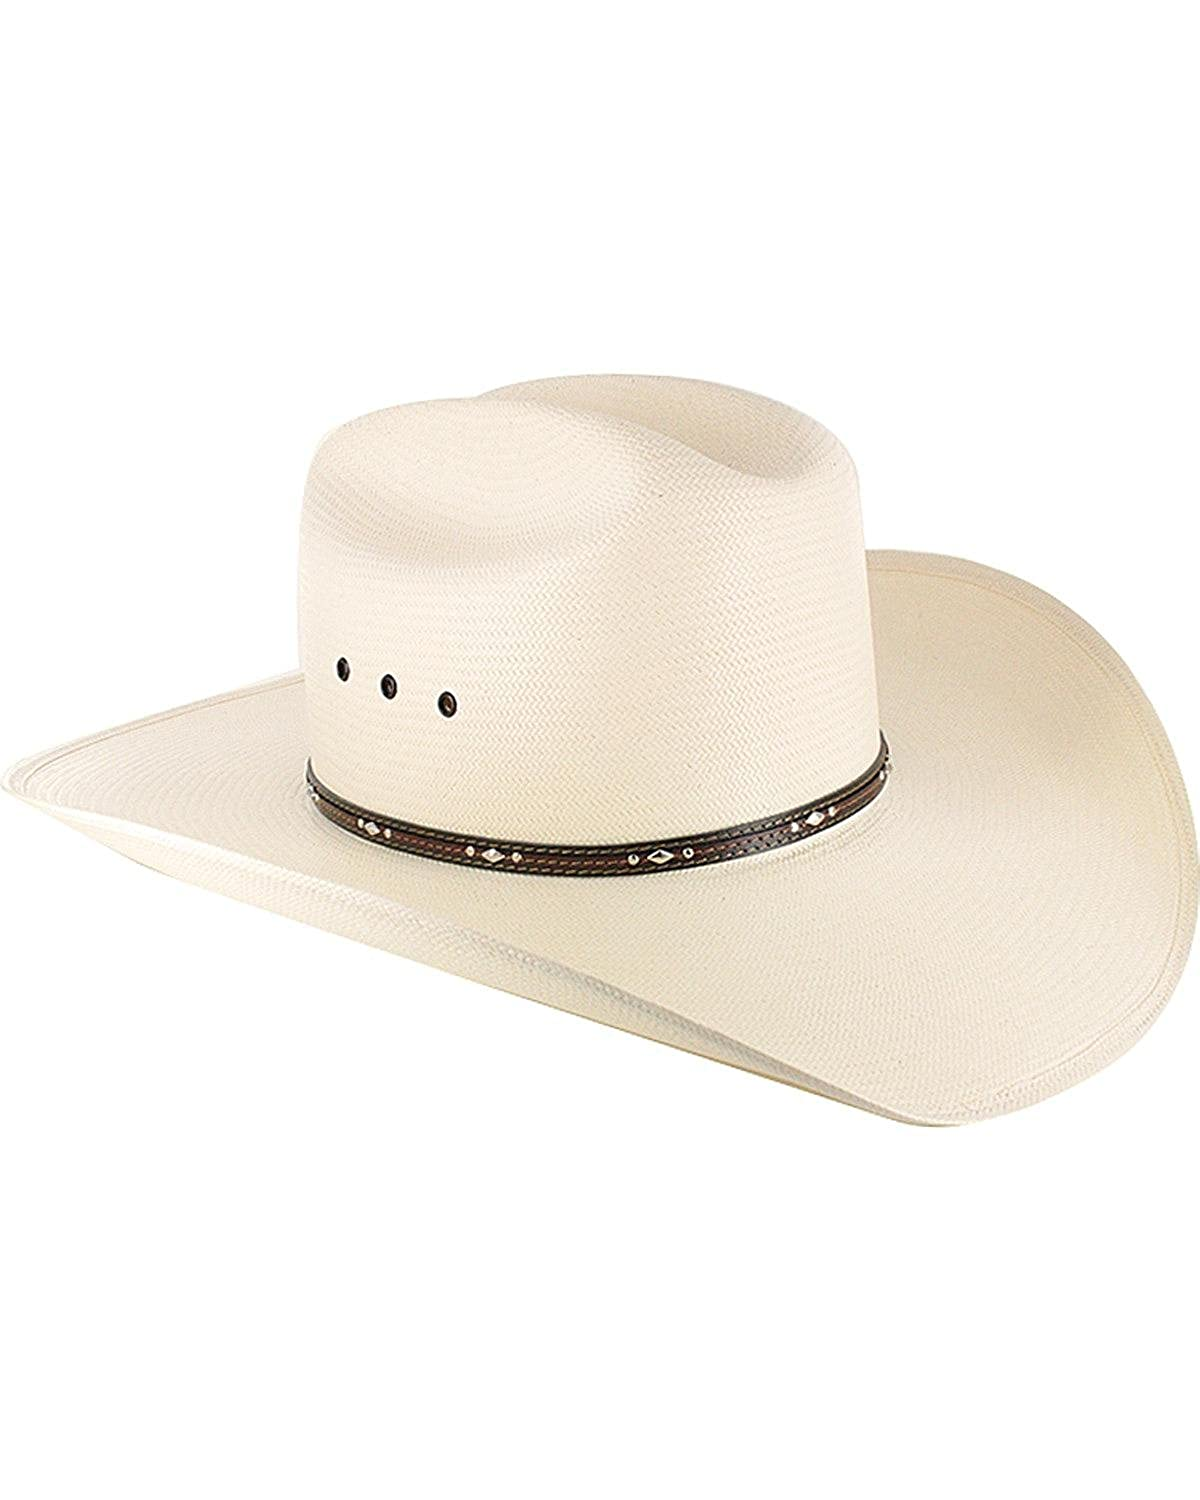 Resistol Men s George Strait Kingman 10X Straw Cowboy Hat - Rskngk-304281  at Amazon Men s Clothing store  573dda1307a